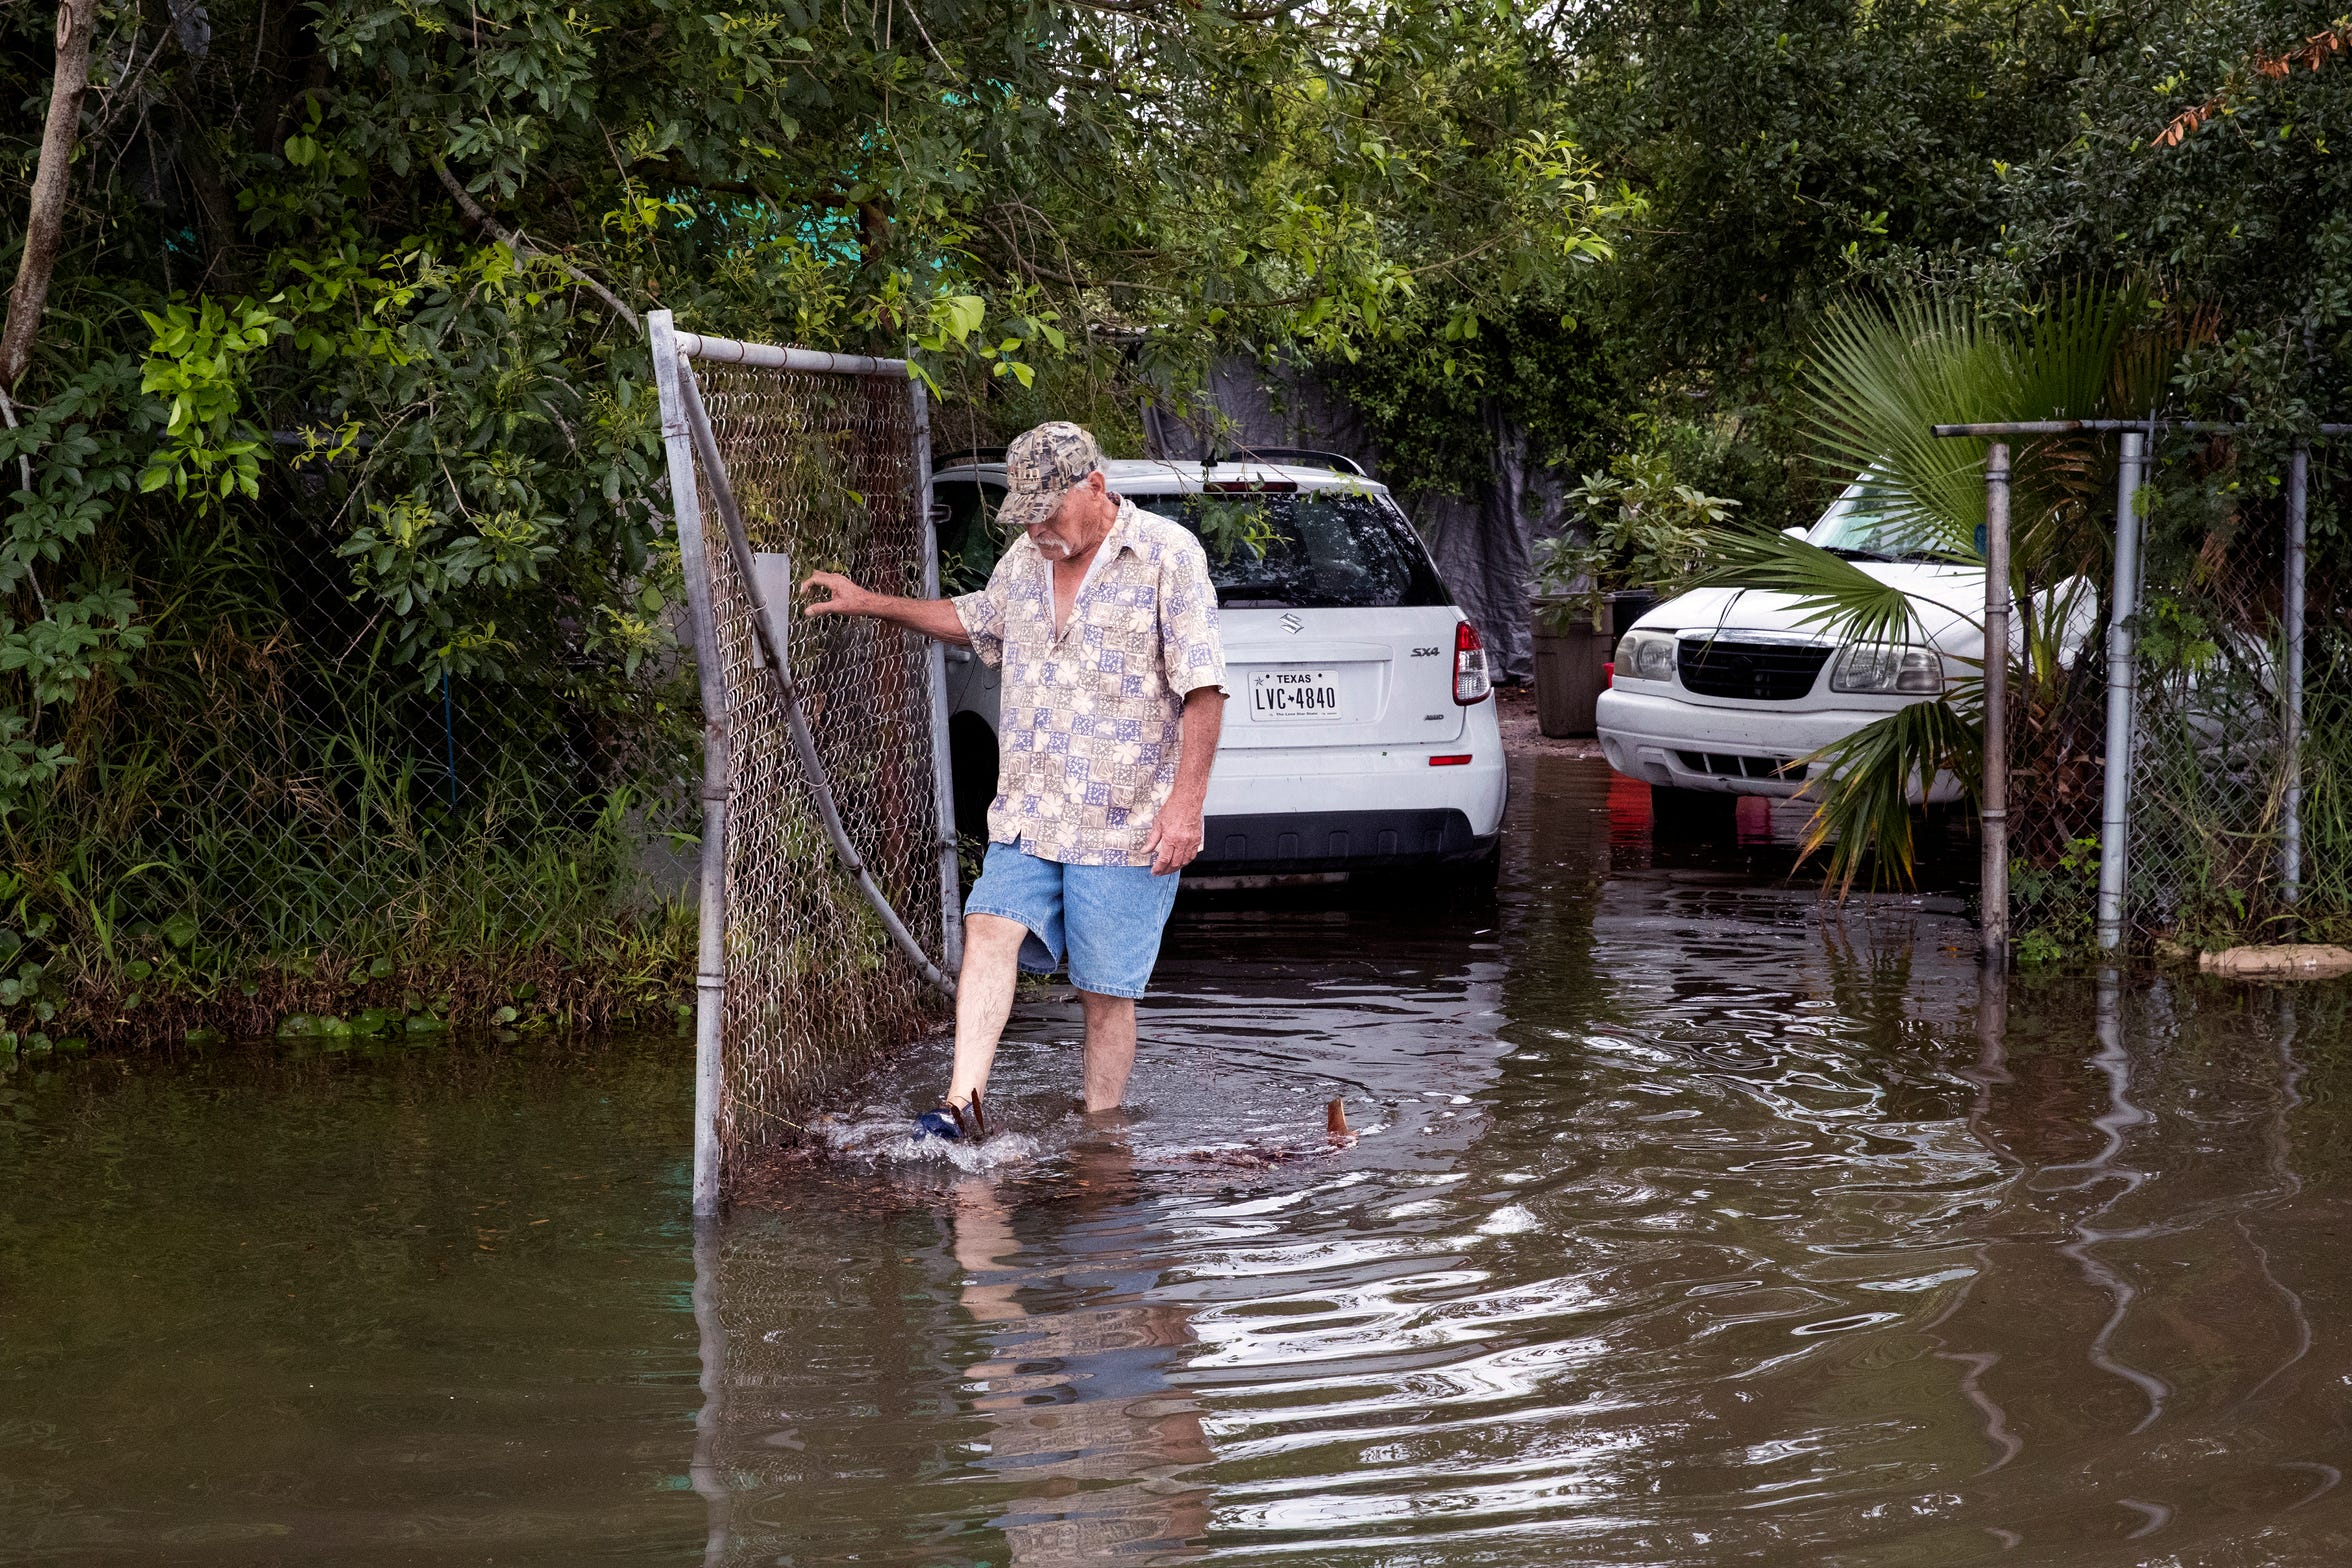 Joe Gonzalez walks through flood waters outside his home on Flour Bluff Drive following heavy rains on Friday, May 10, 2019.